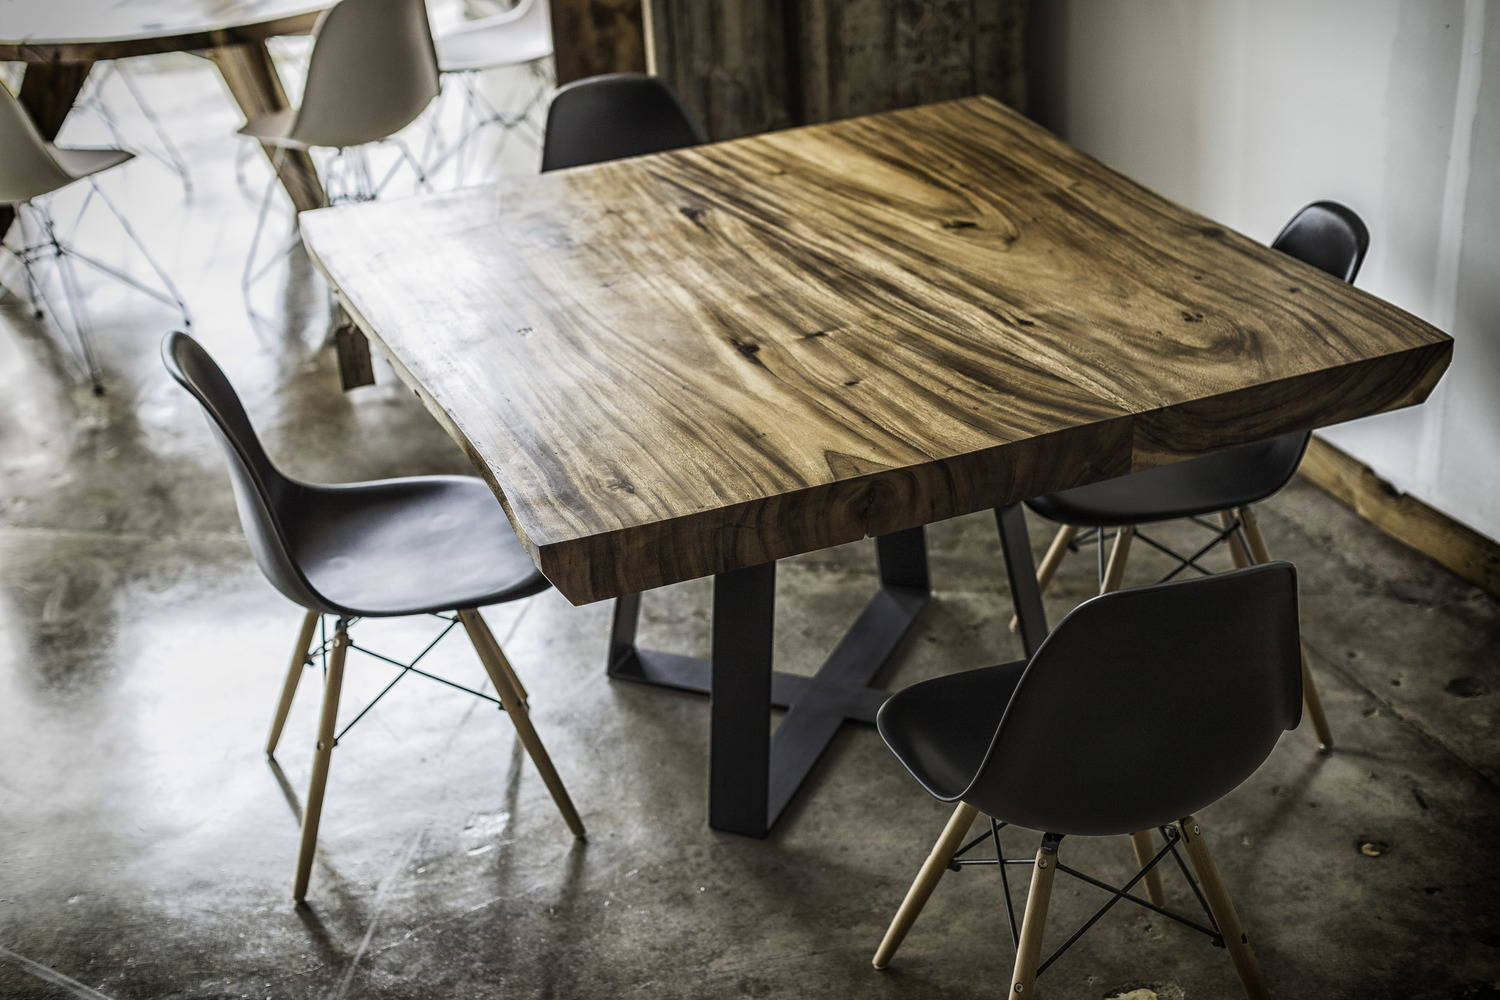 Our Live Edge Tables Are Naturally Perfect, We Choose The Best Grain Color  Combinations, Textures And Edge Balance. Our Wood Slabs Have Been  Progresivly ...